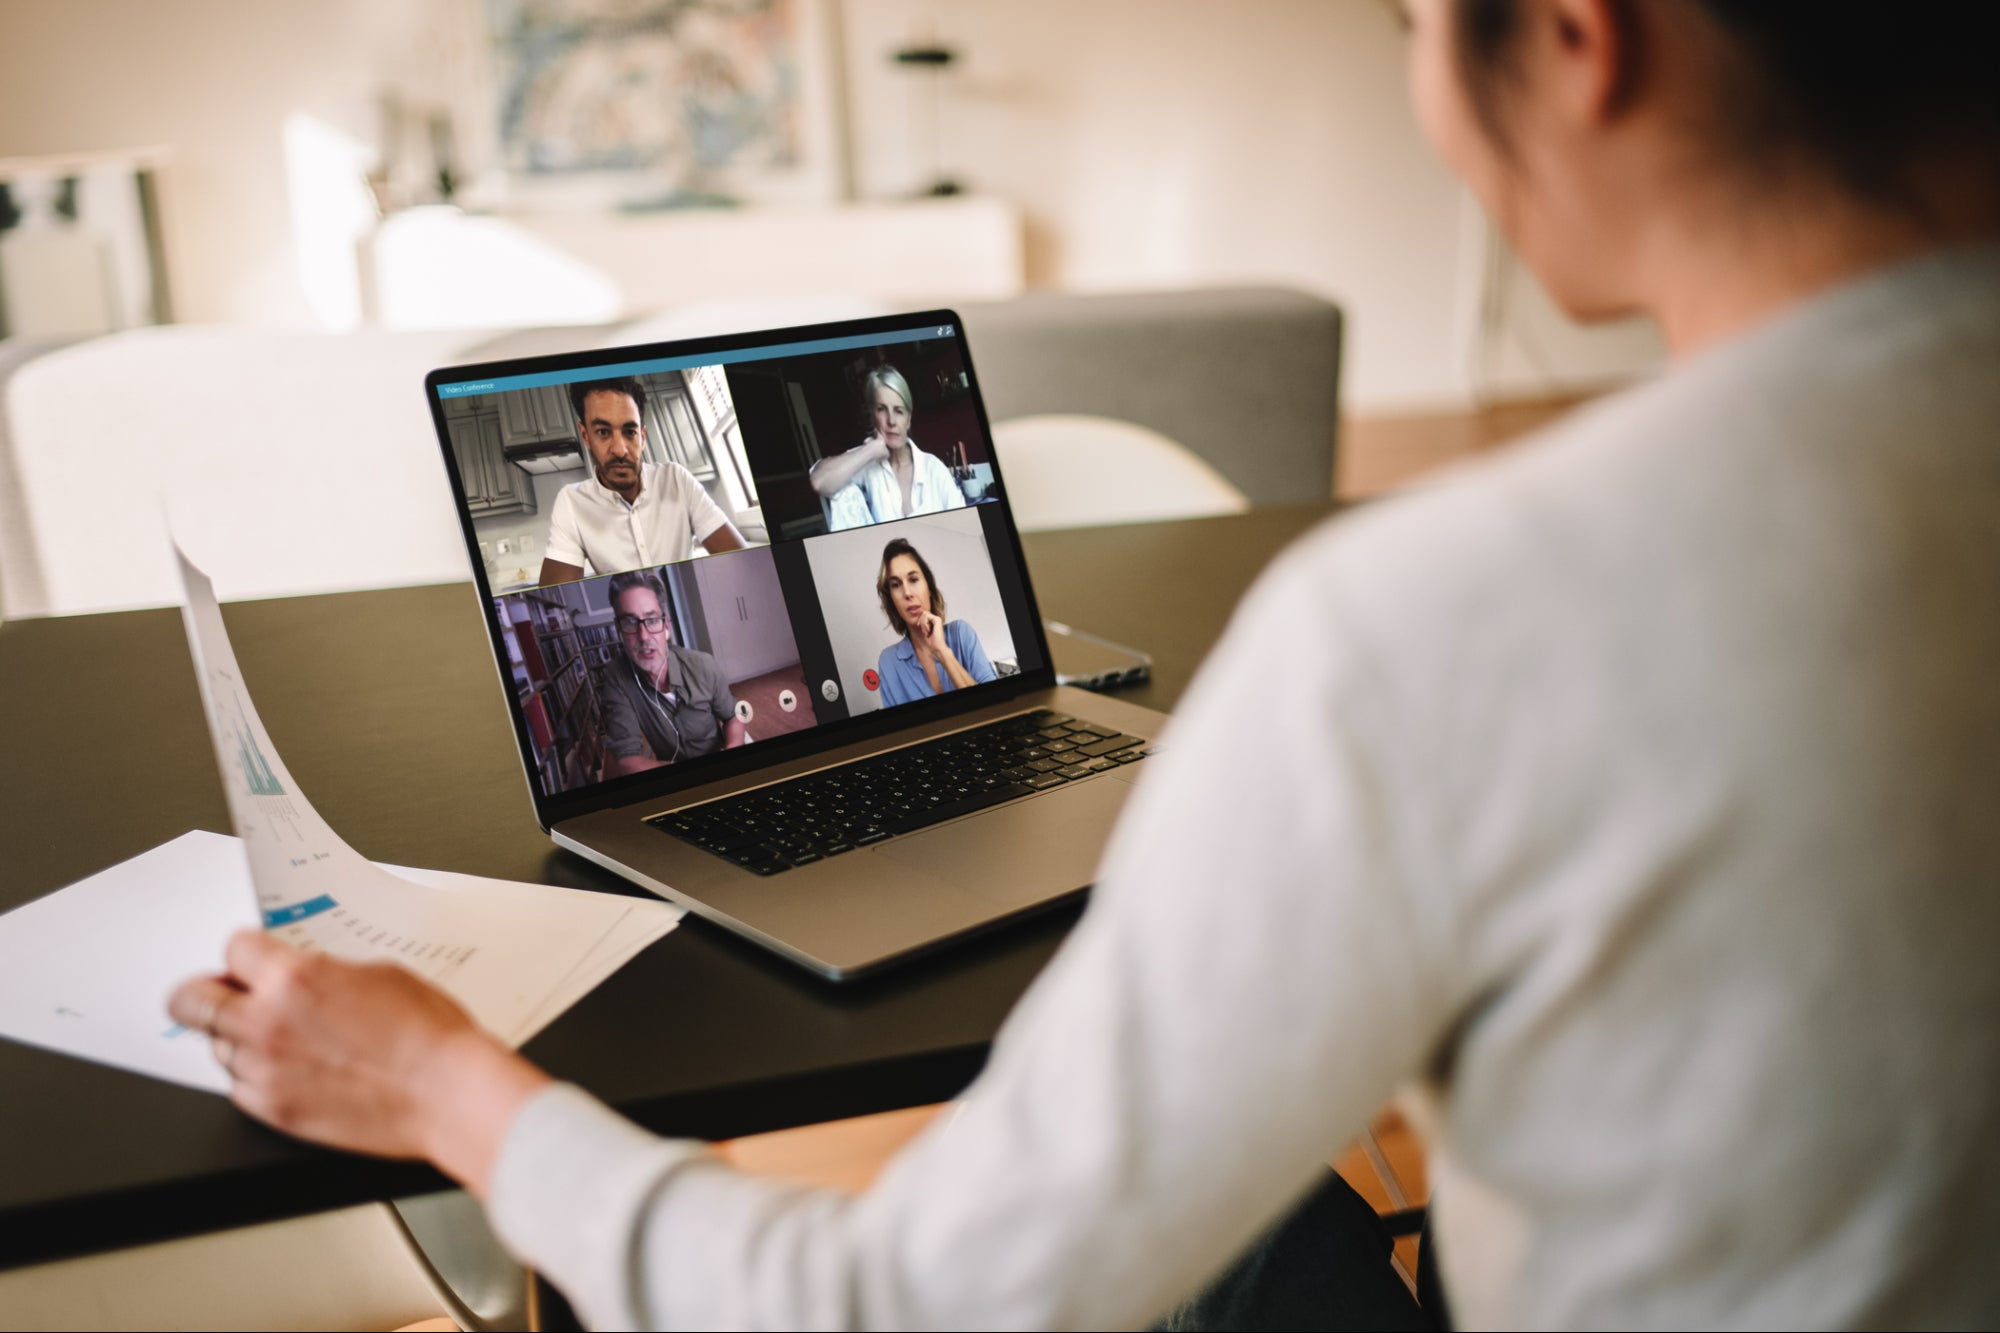 Here's How to Find and Hire Great Remote Workers